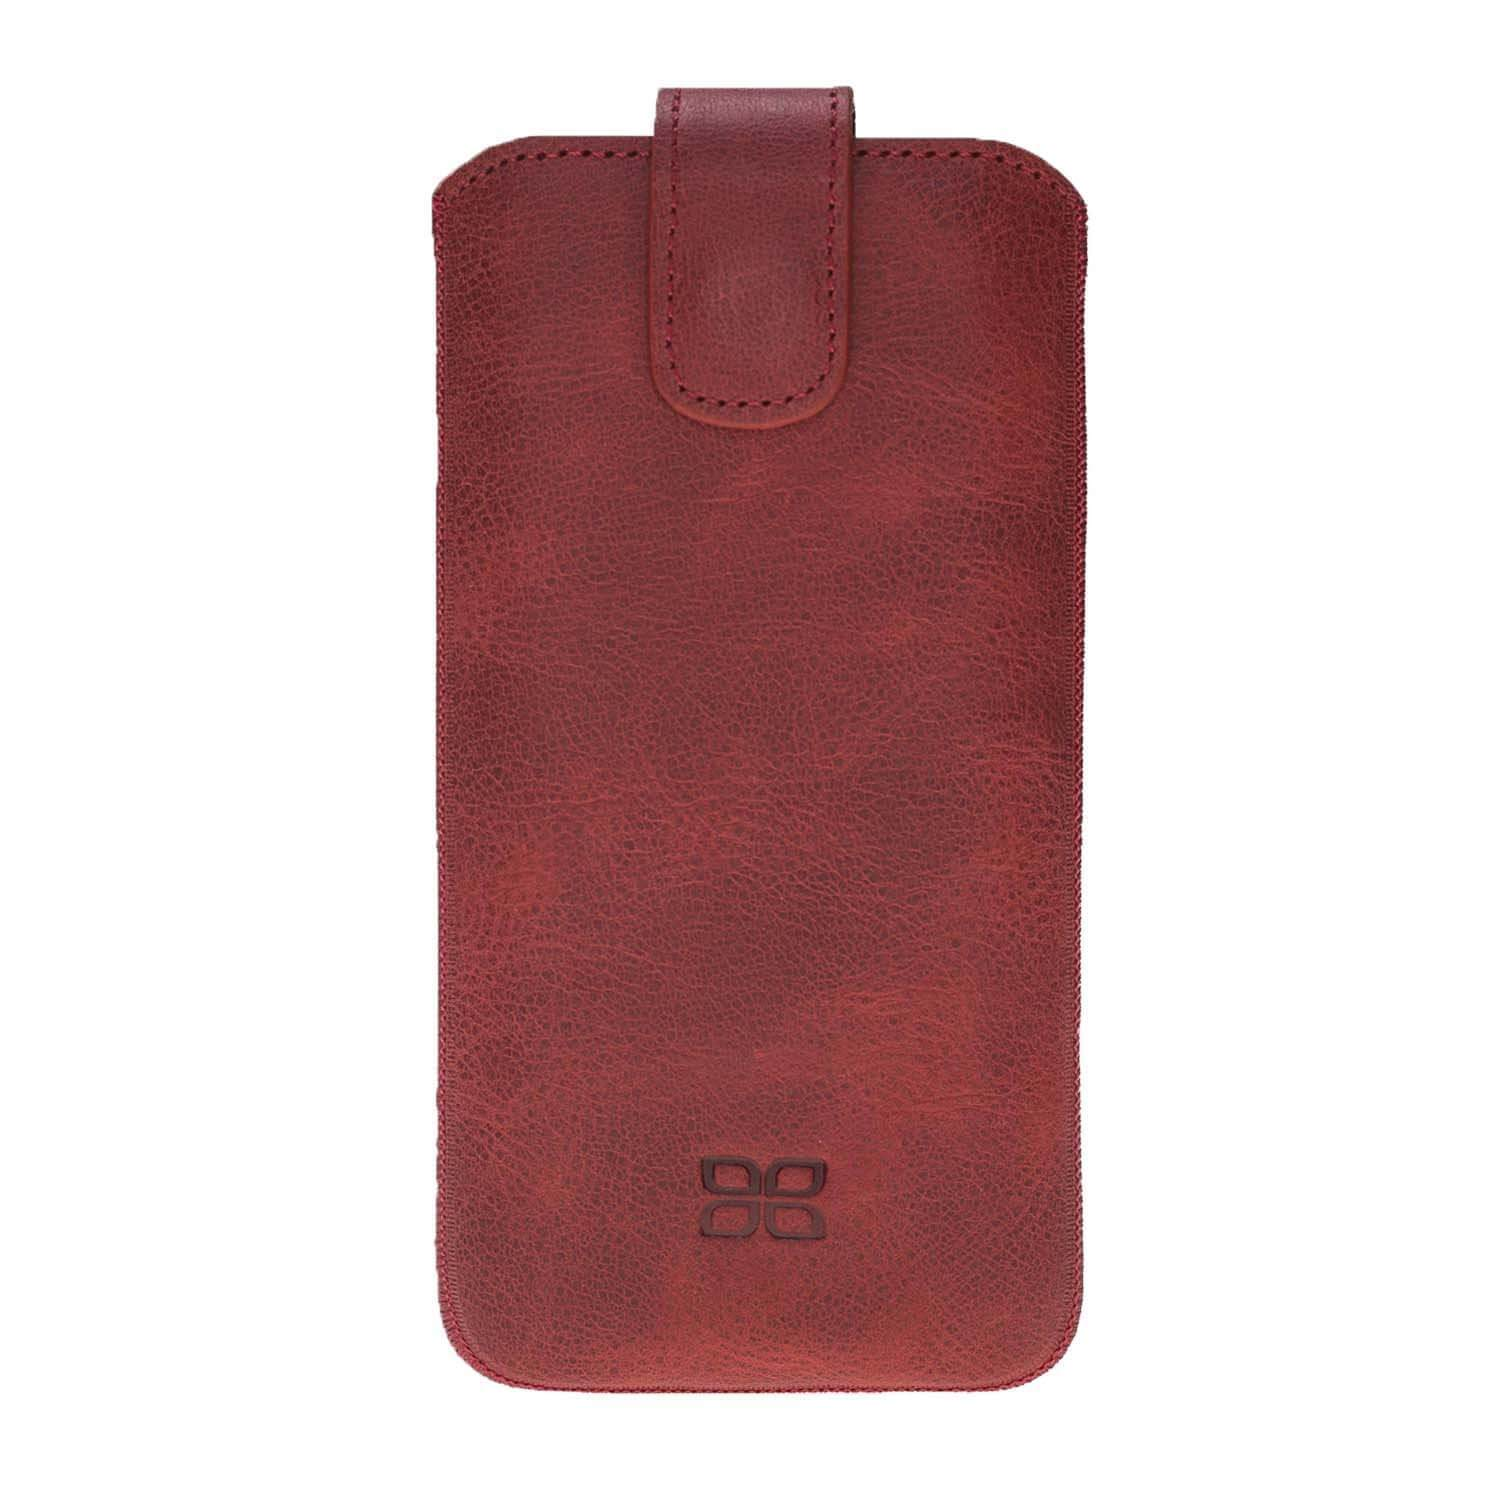 Phone Case Multi Leather Case for Apple iPhone X/XS - Tiguan Red Bouletta Case